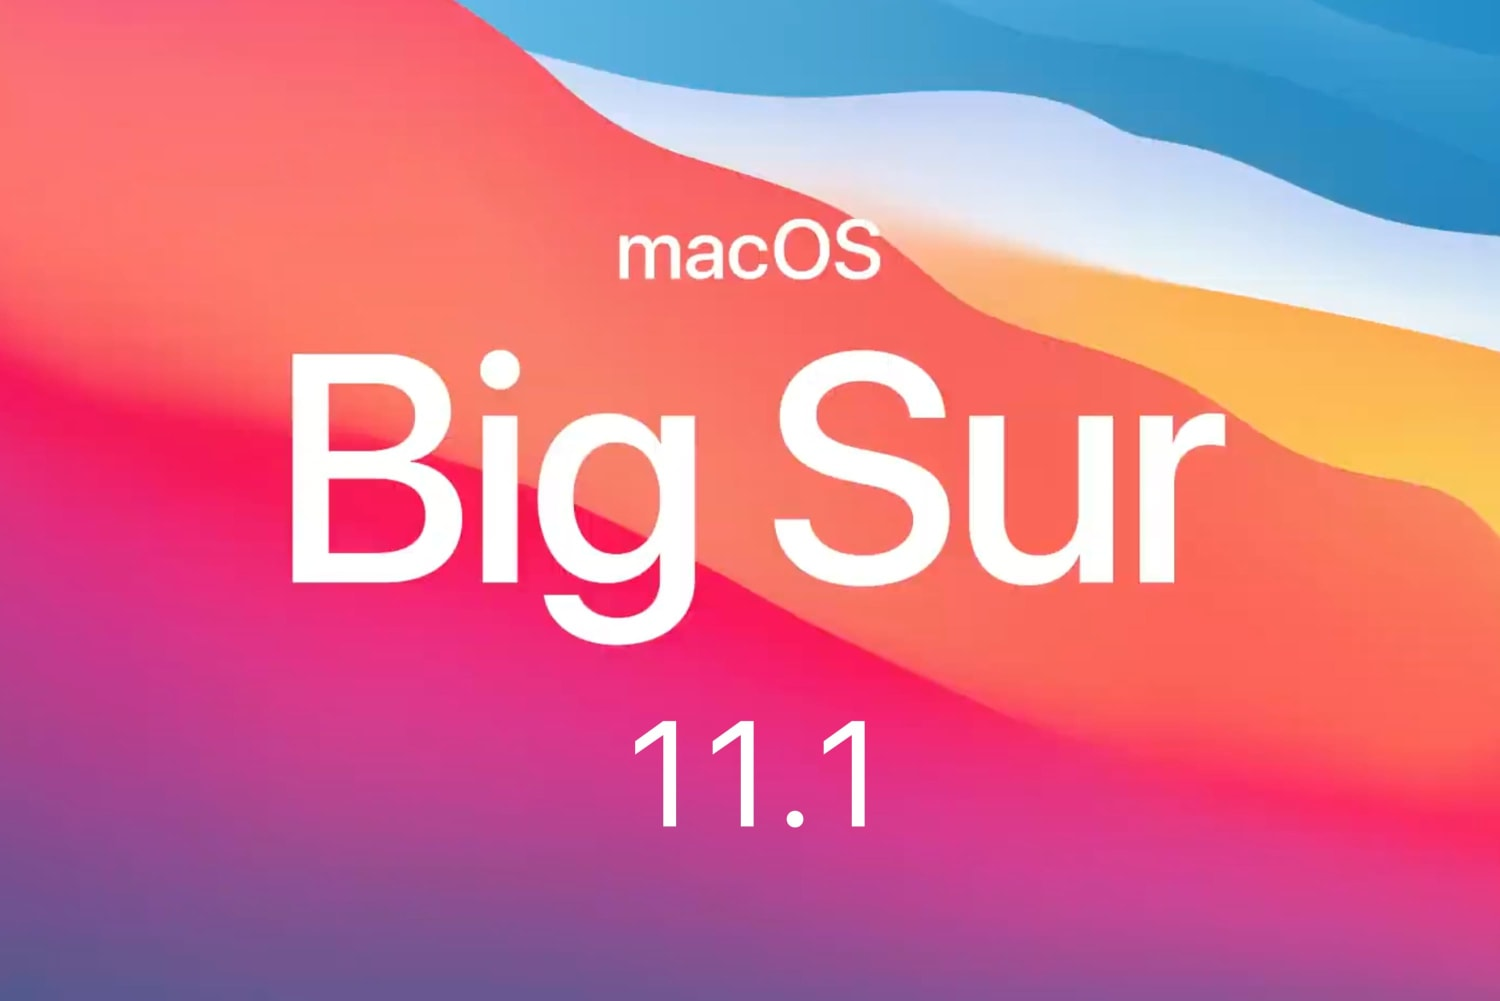 macos-11-1-big-sur-first-beta-now-available-to-public-beta-testers-20201118-1